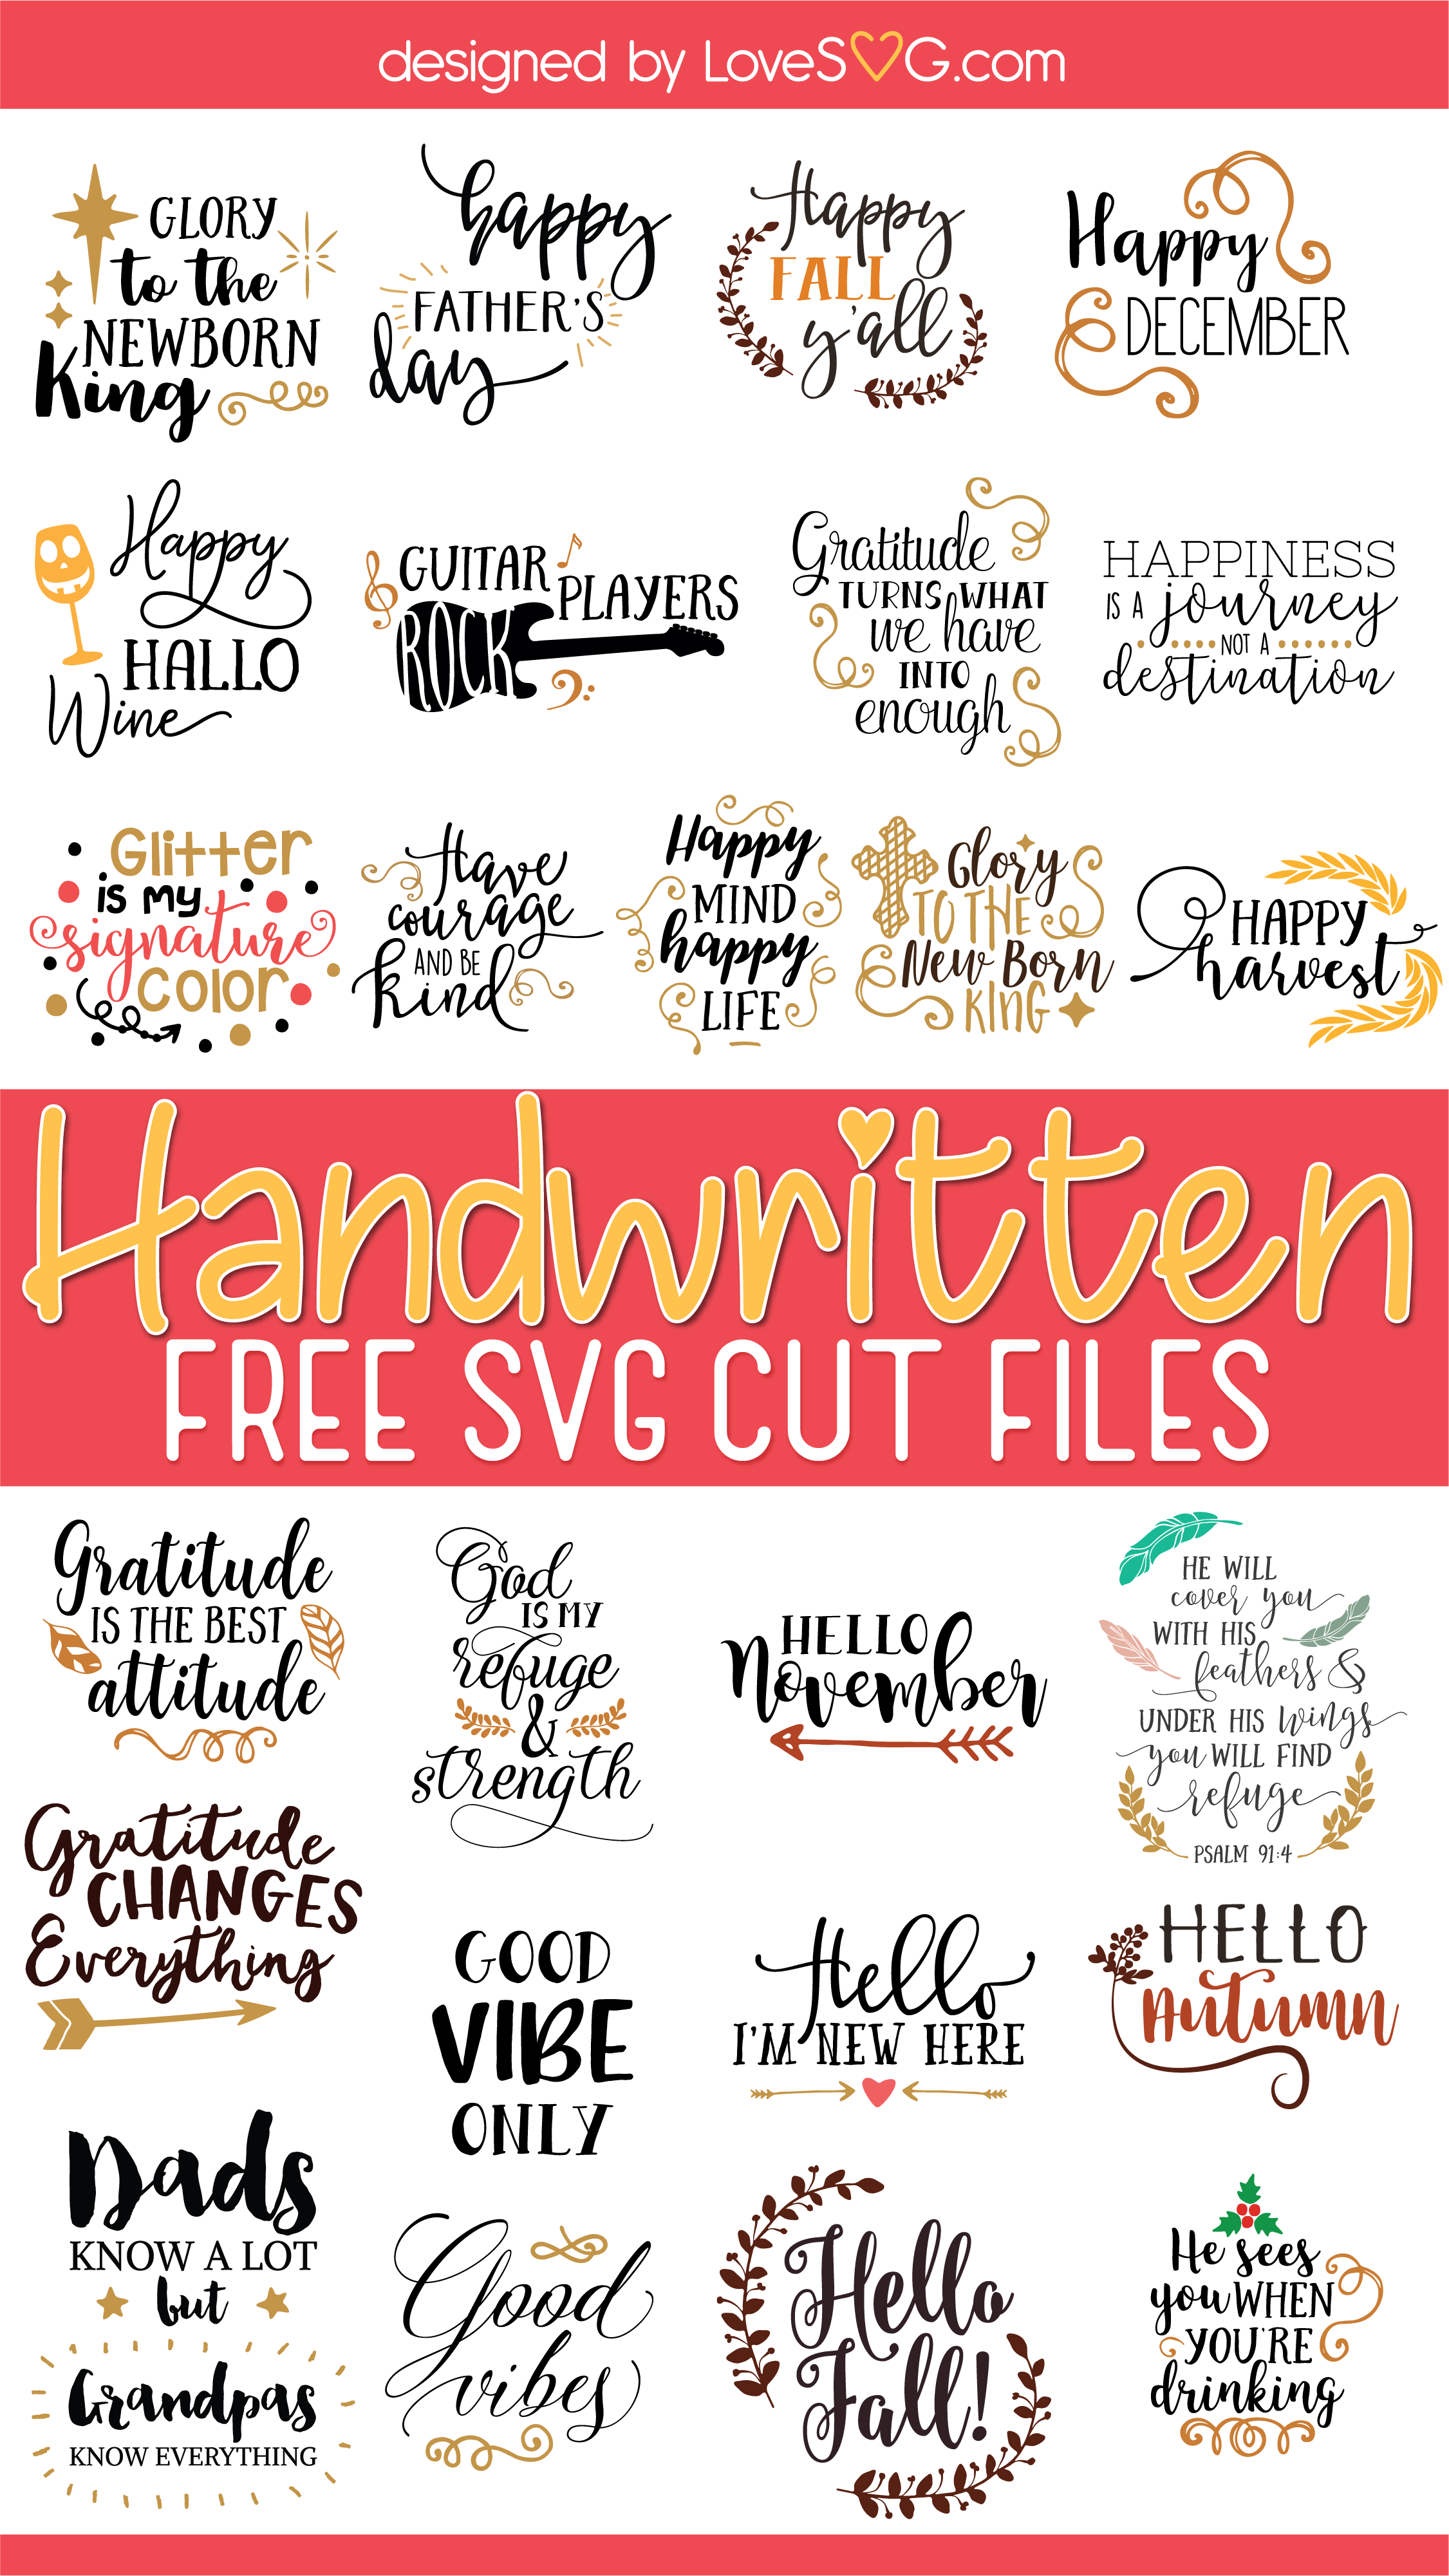 Download Pin on Free Quotes SVG Cut Files | LoveSVG.com